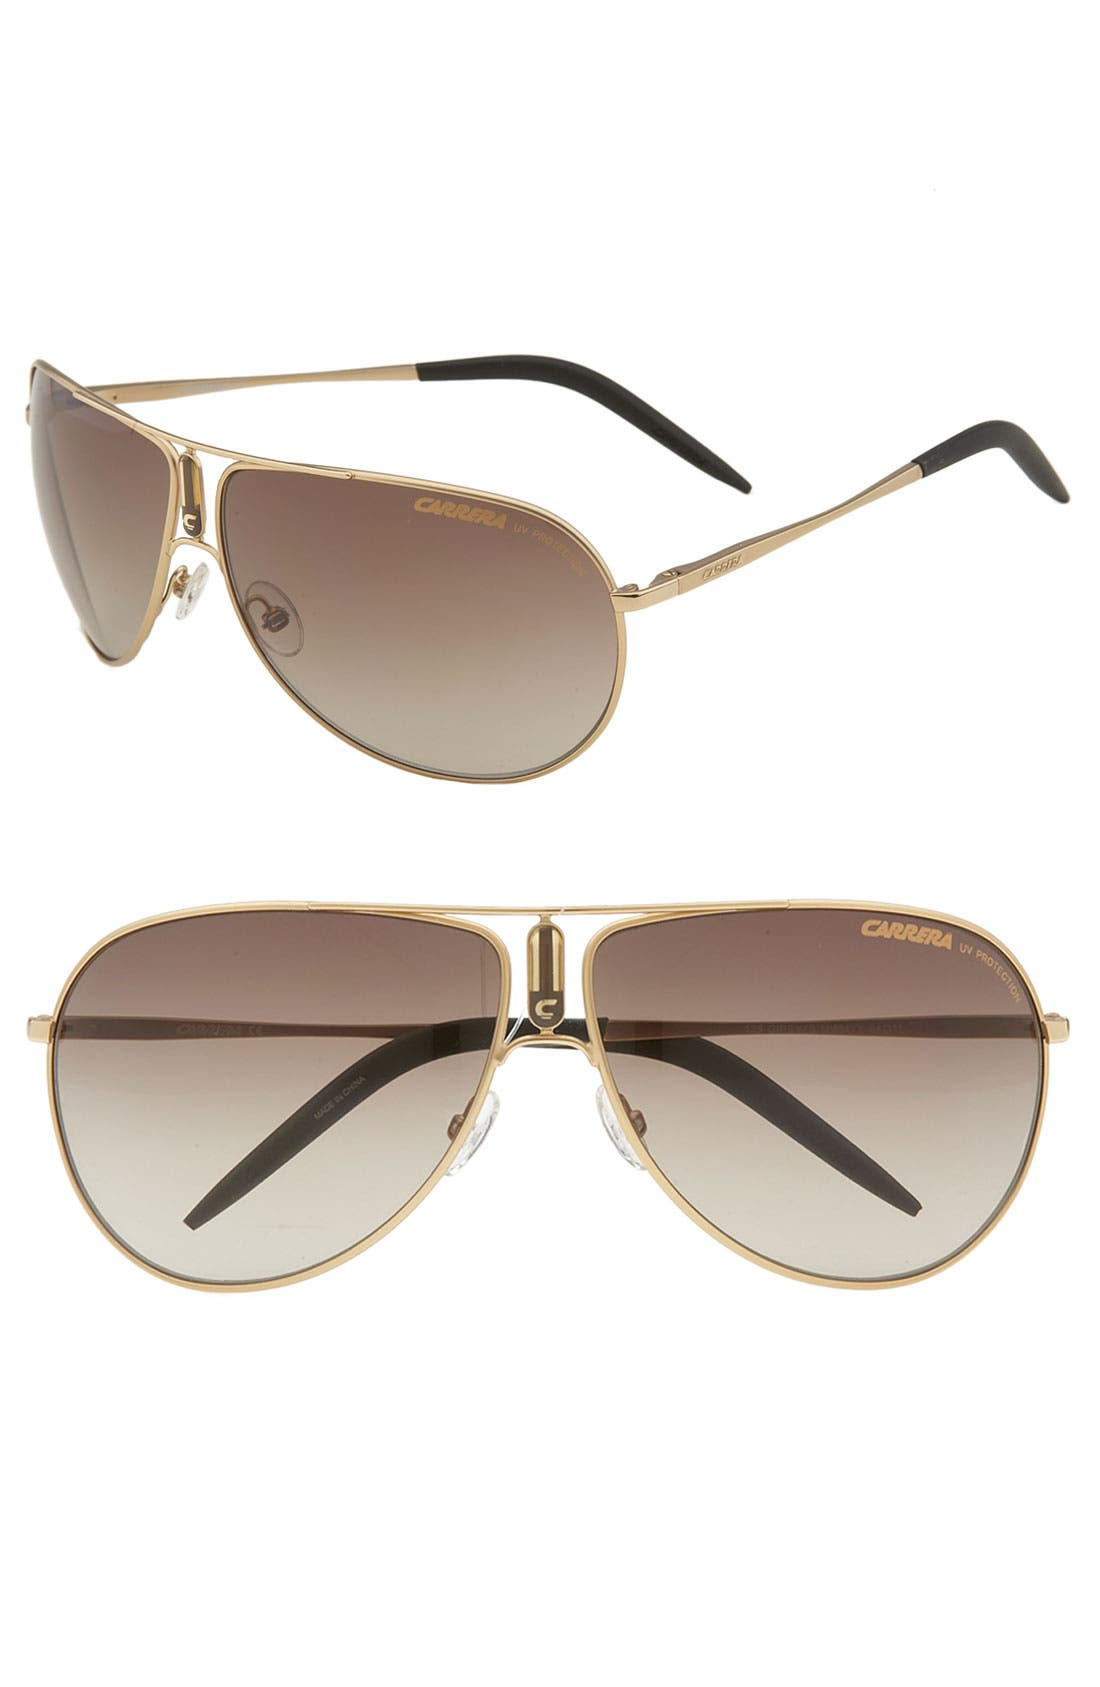 Alternate Image 1 Selected - Carrera Eyewear 'Gypsy' Metal Aviator Sunglasses